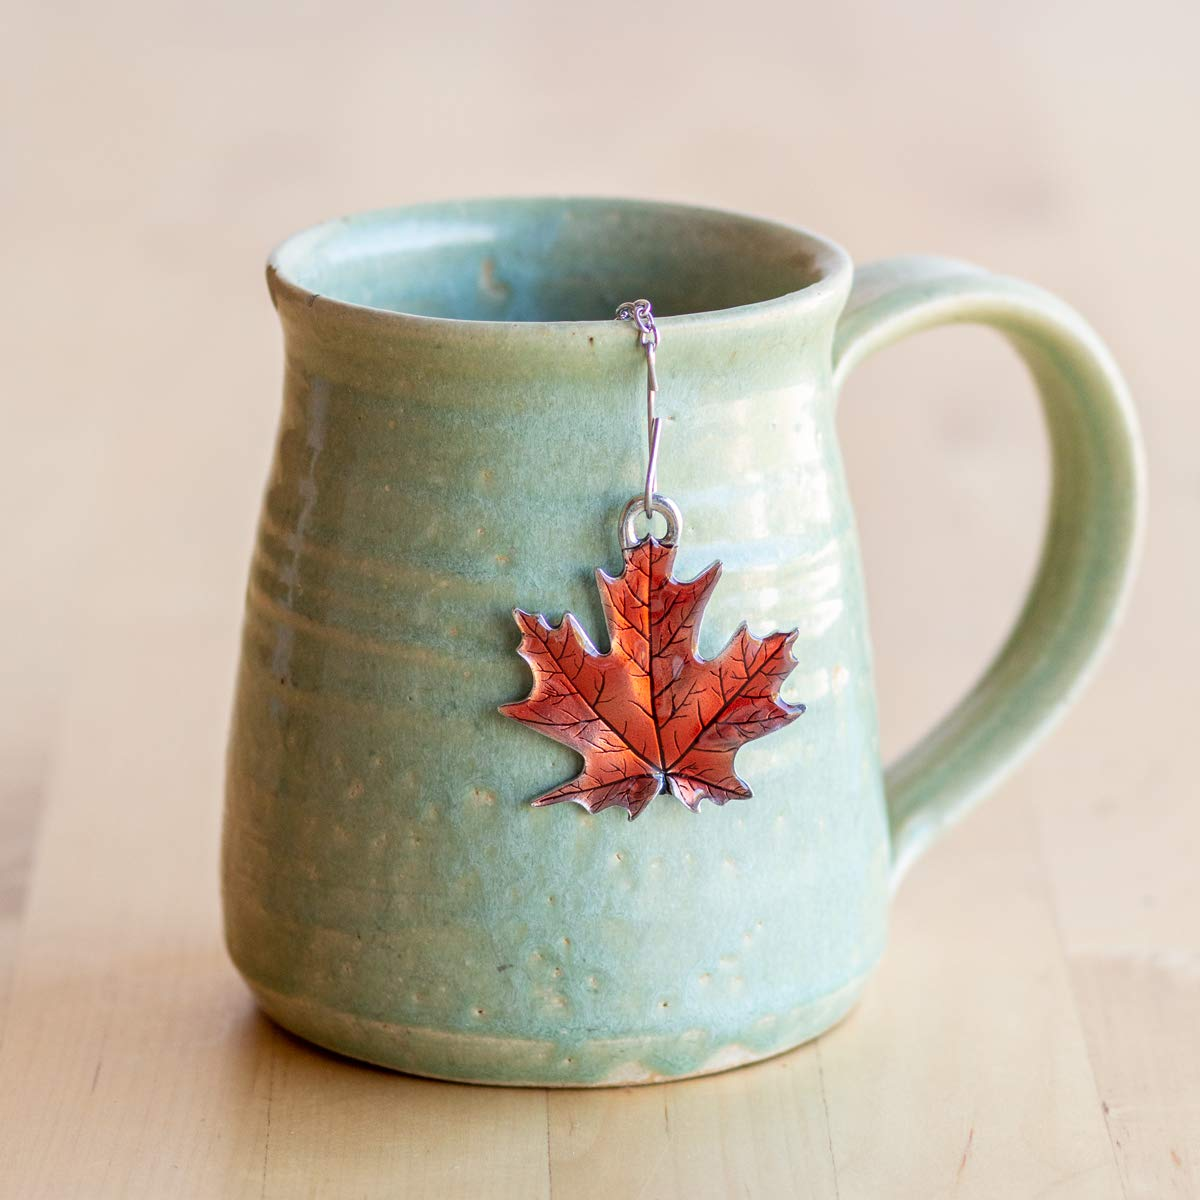 DANFORTH - Maple Leaf/Autumn Tea Infuser - Handcrafted - Made in USA - Gift Boxed by DANFORTH